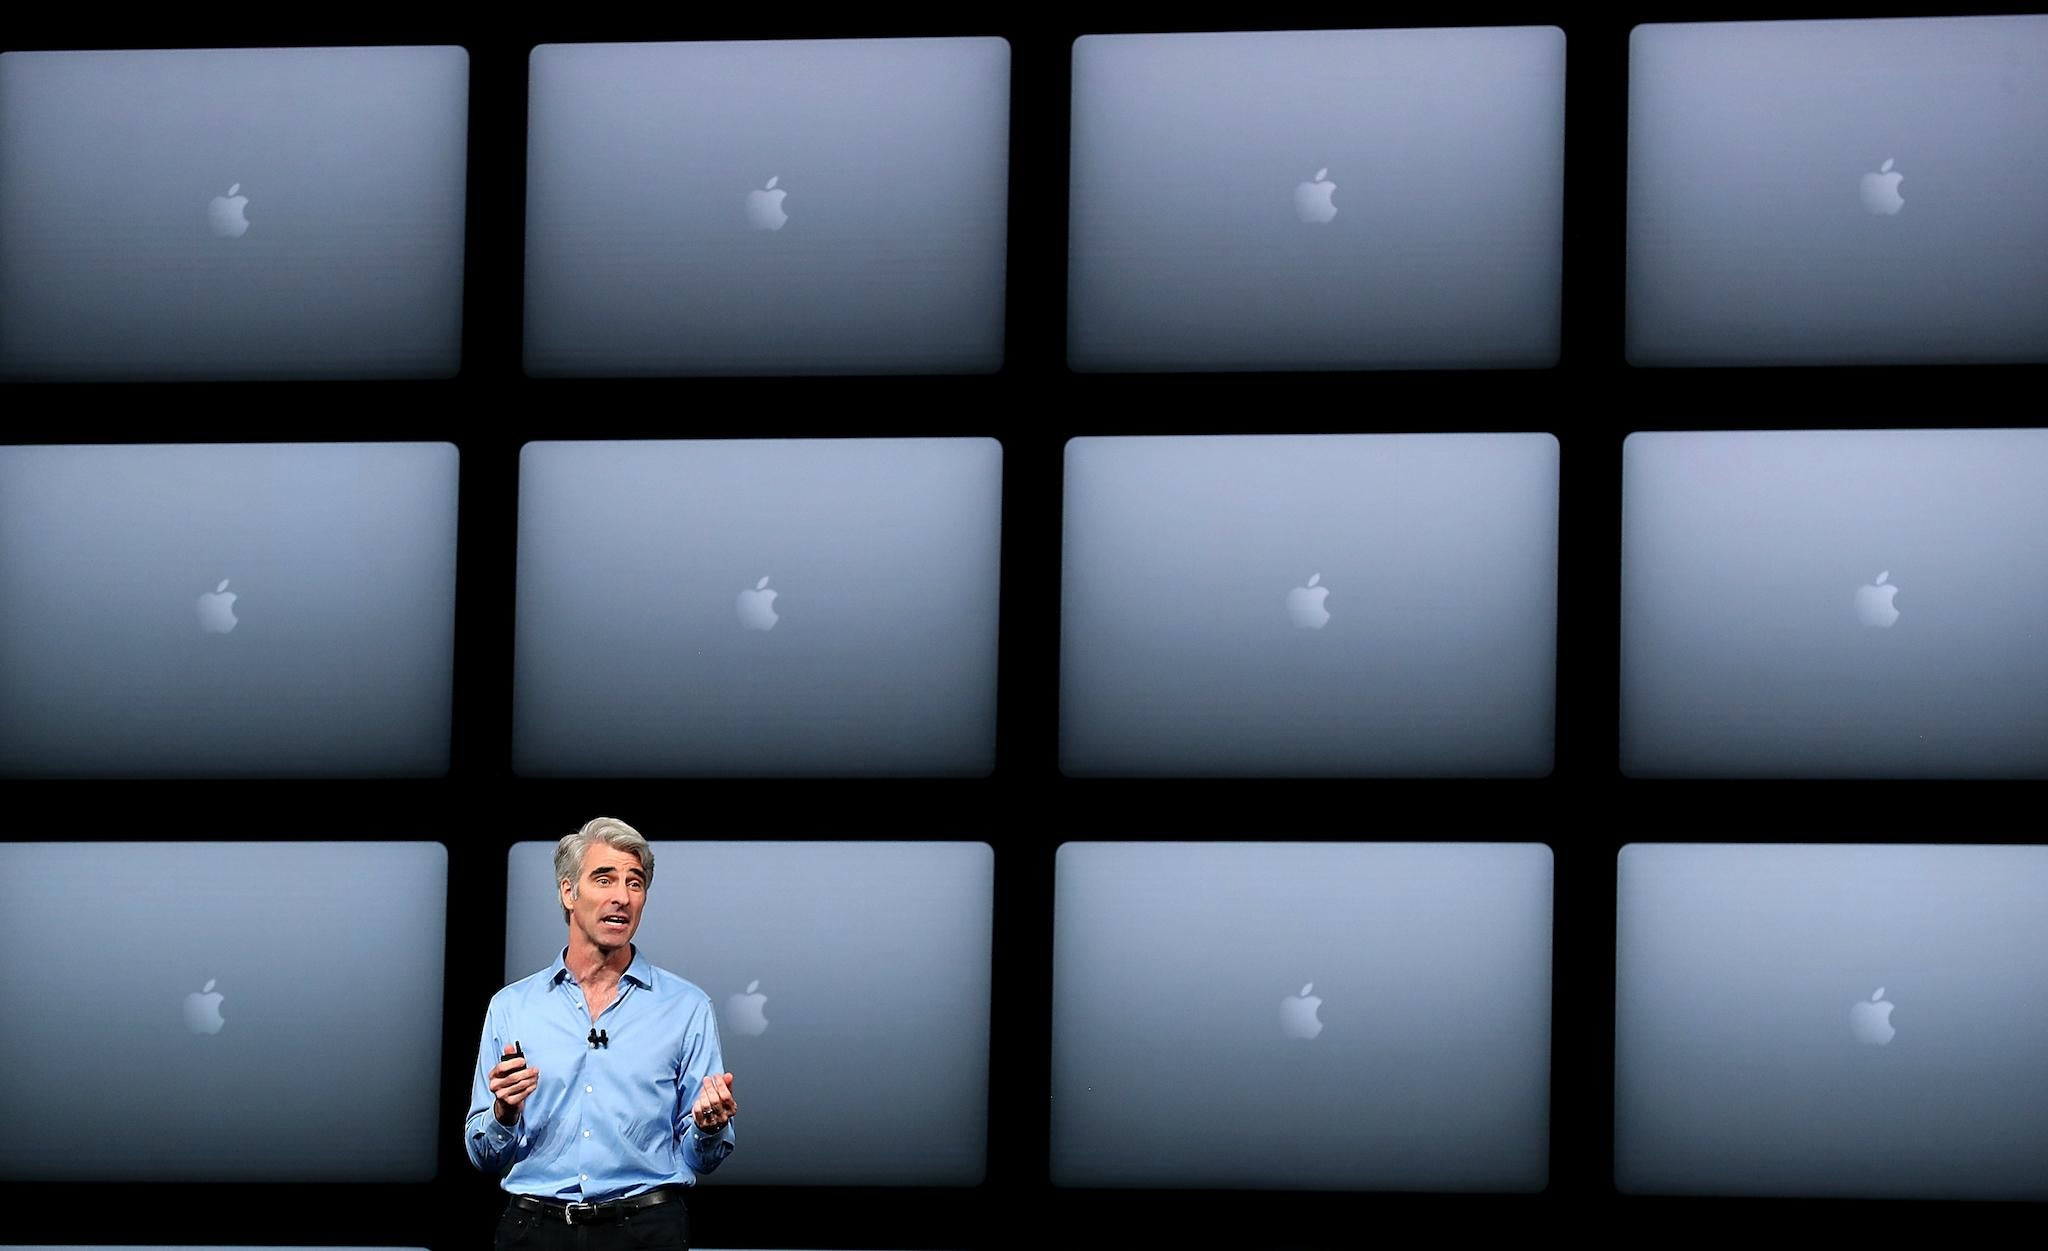 MacOS Mojave: Apple reveals dramatic new changes to Mac software at WWDC 2018